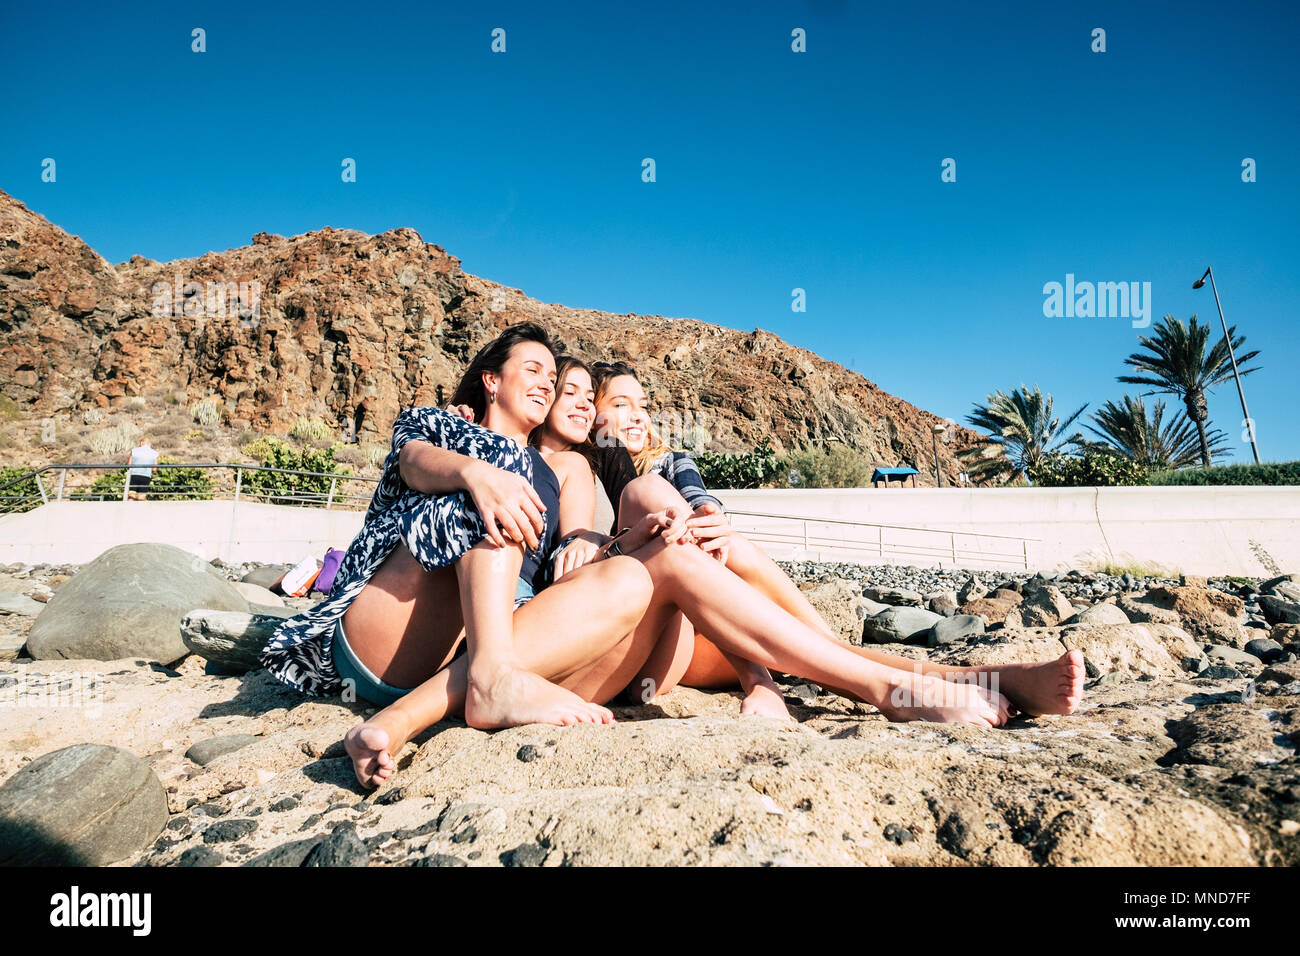 Group Of Beautiful Woman Young Speaking And Smiling Aroud In A Stone Beach In Tenerife